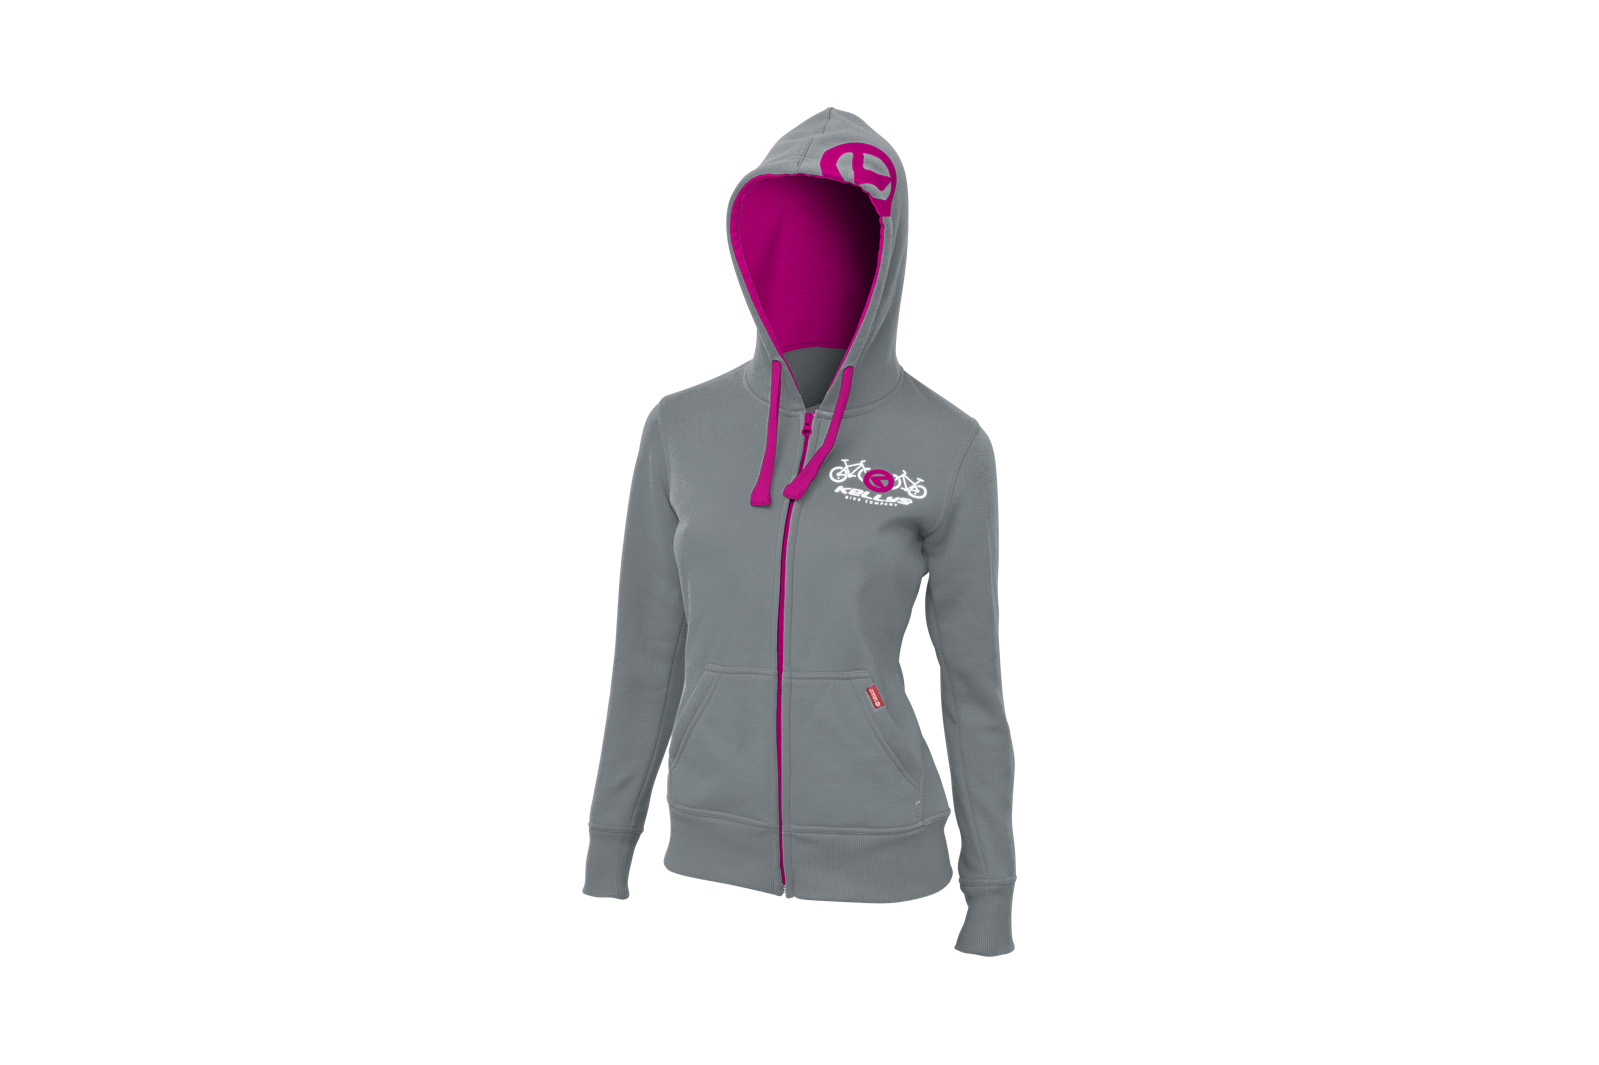 Sweatjacke KELLYS WOMEN´S BASIC Grey - L - Mile-Multisport